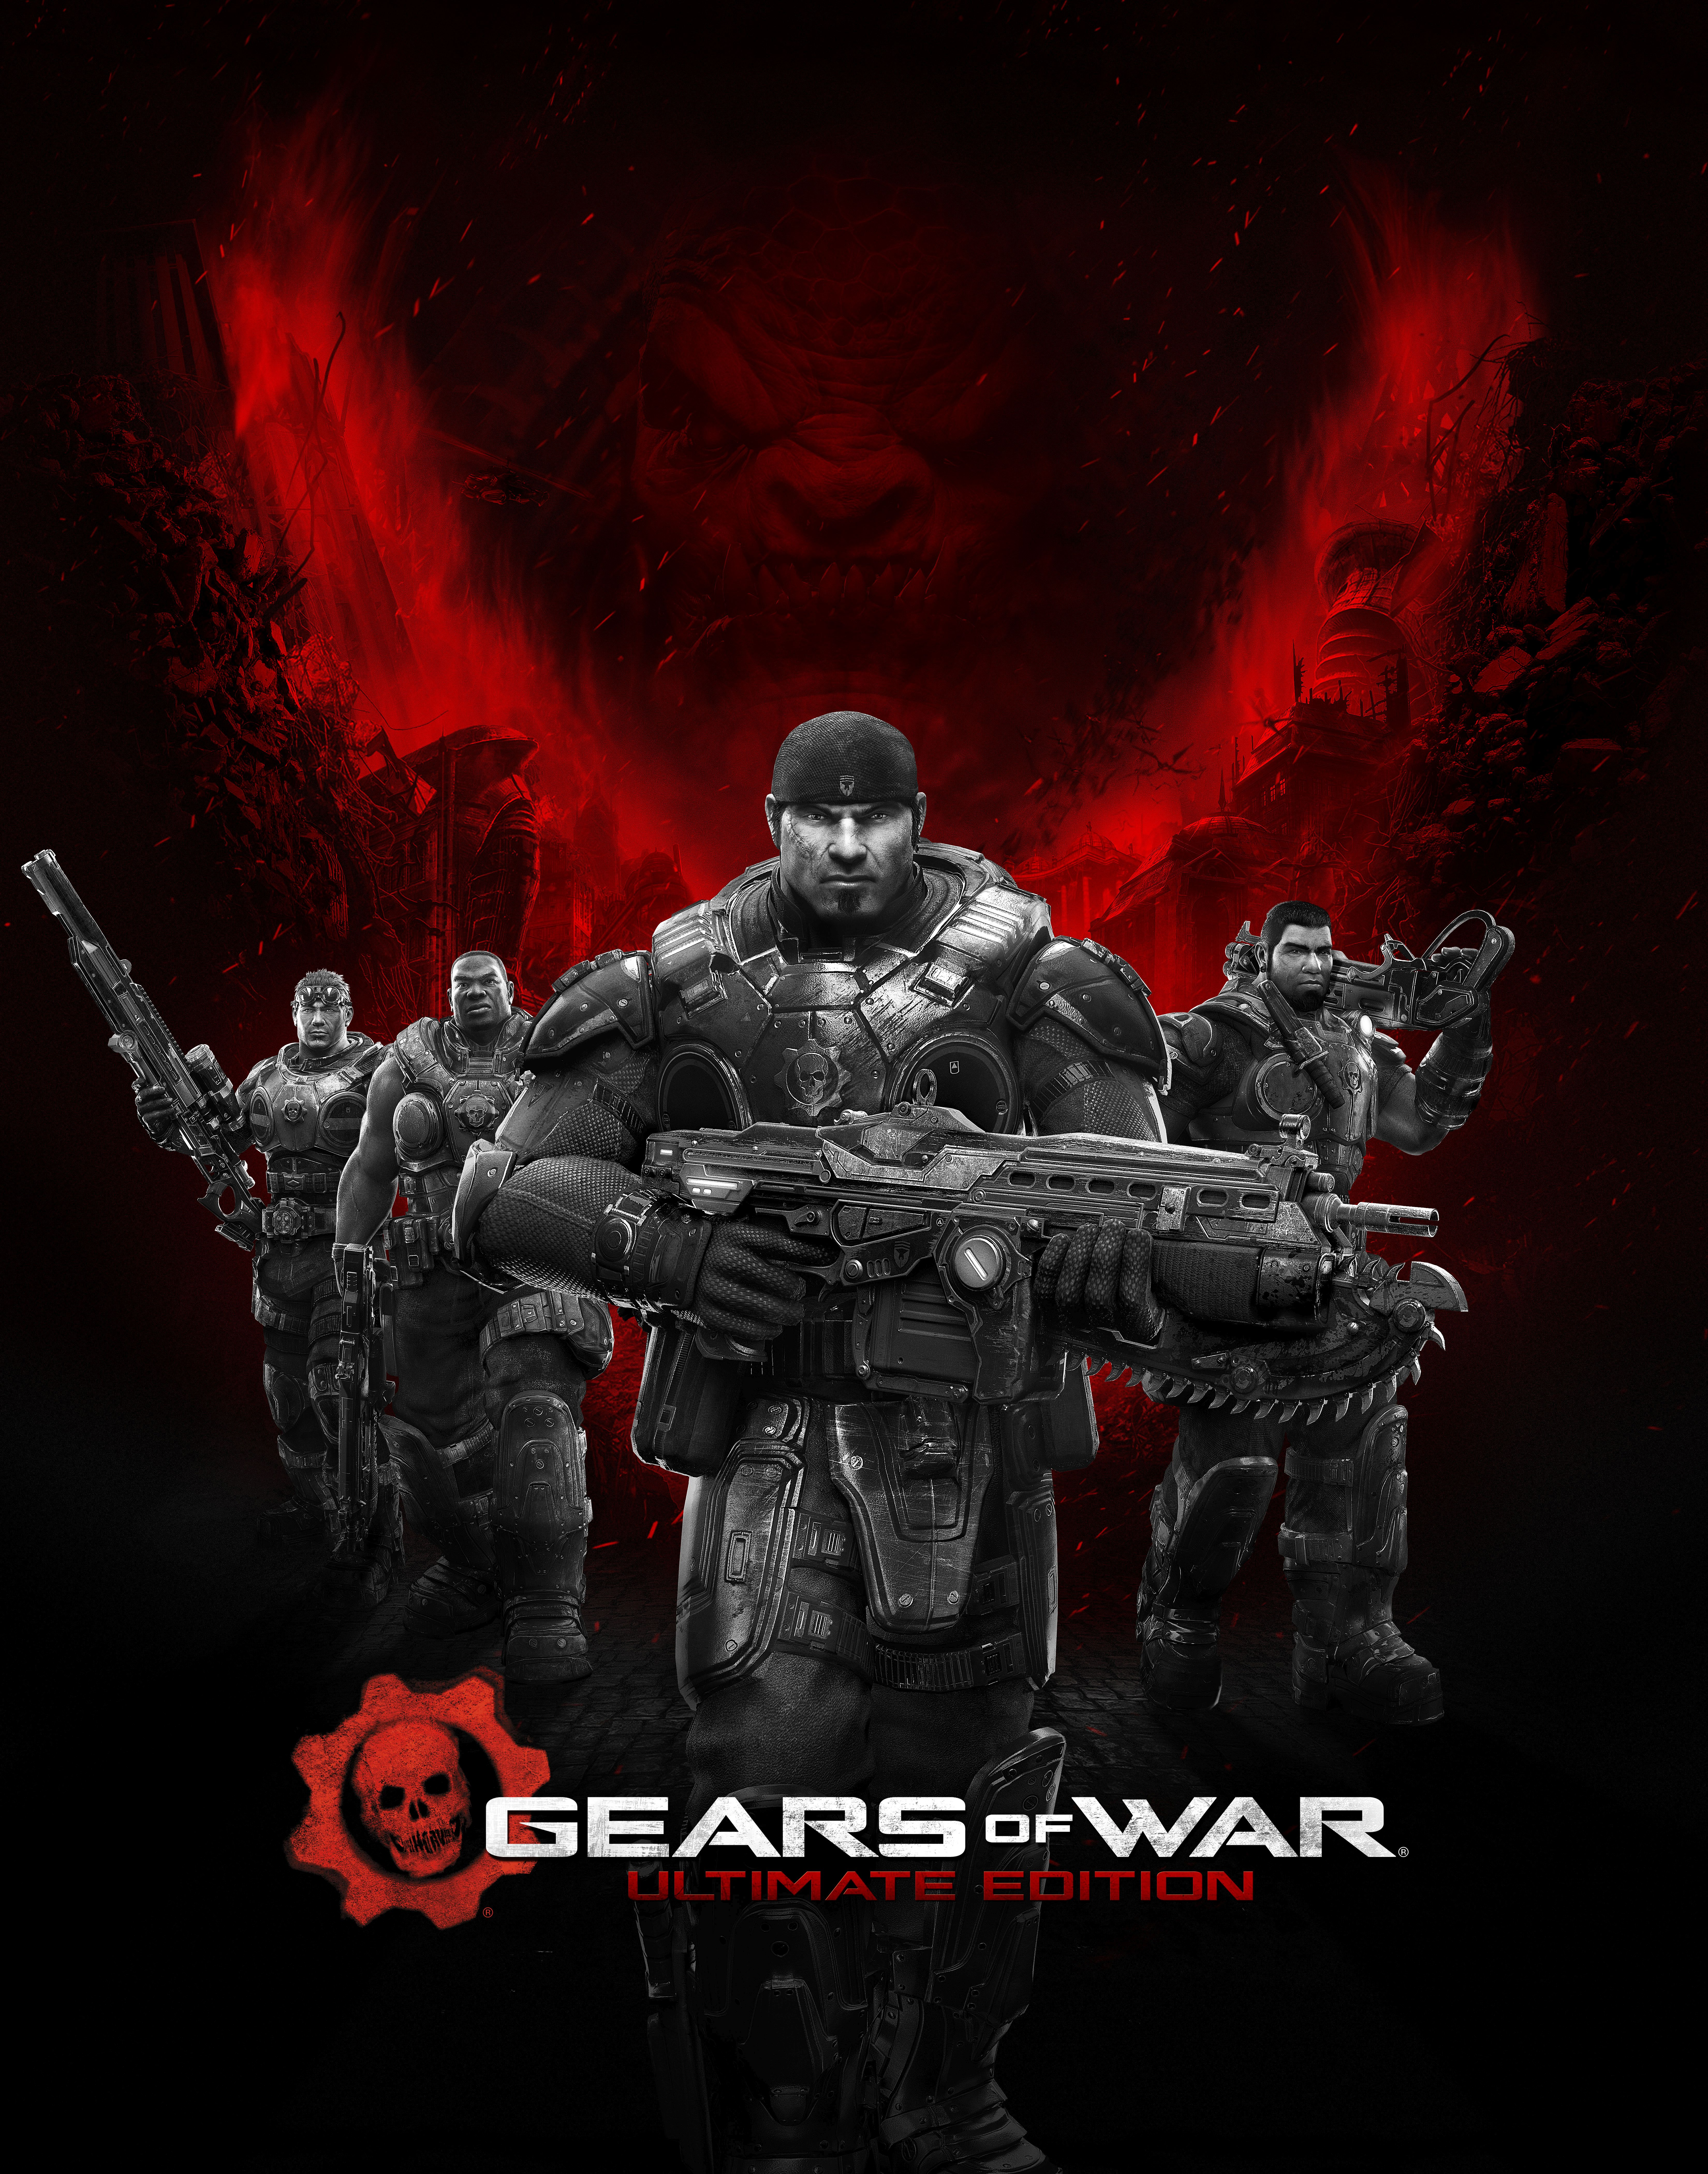 Gears-of-War-Ultimate-Edition_2015_06-15-15_054